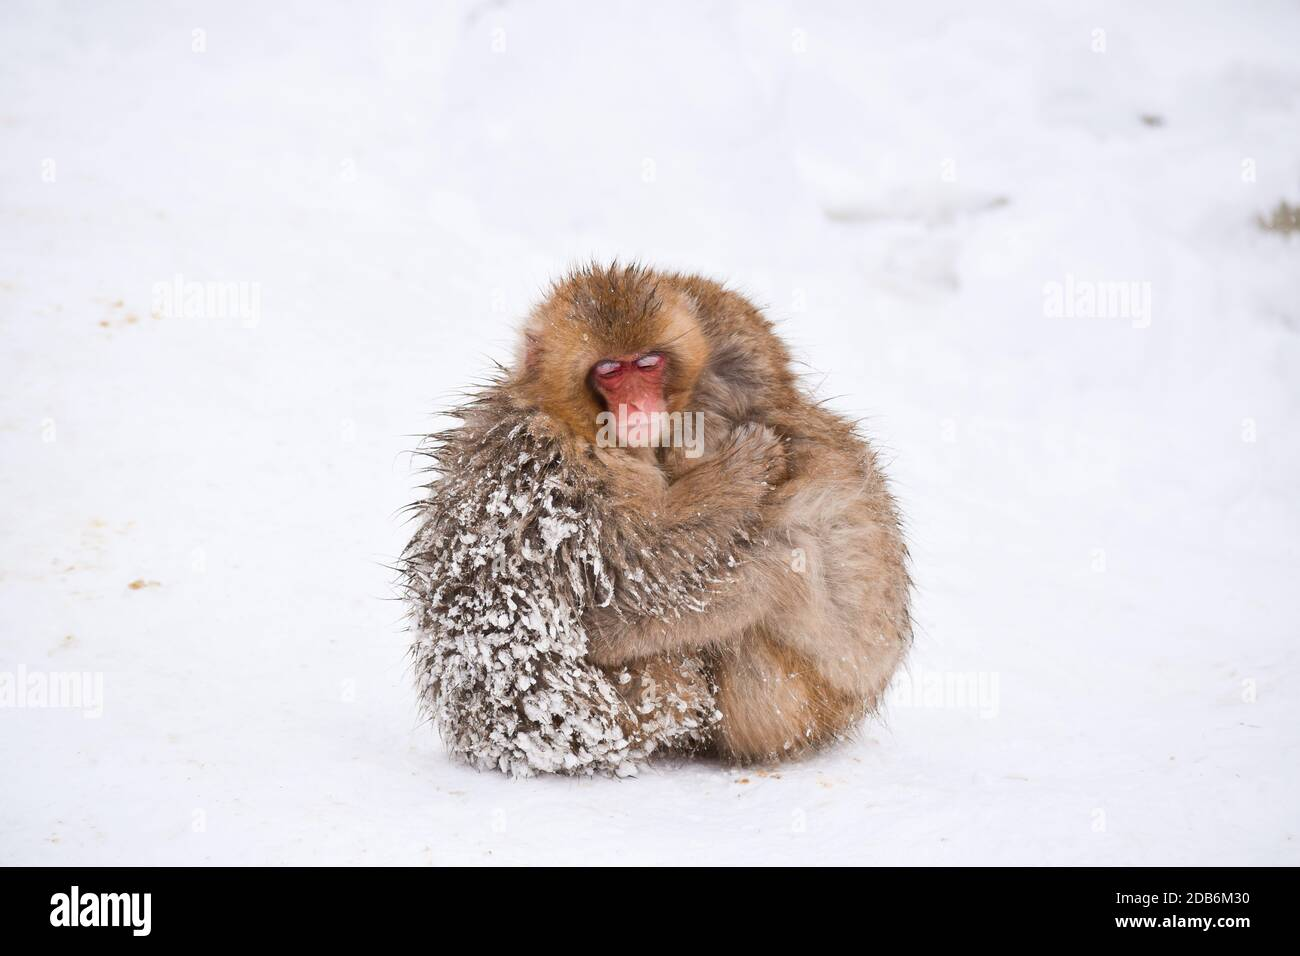 two brown cute baby snow monkeys hugging and sheltering each other from the cold snow with ice in their fur in winter. Wild animals showing love Stock Photo